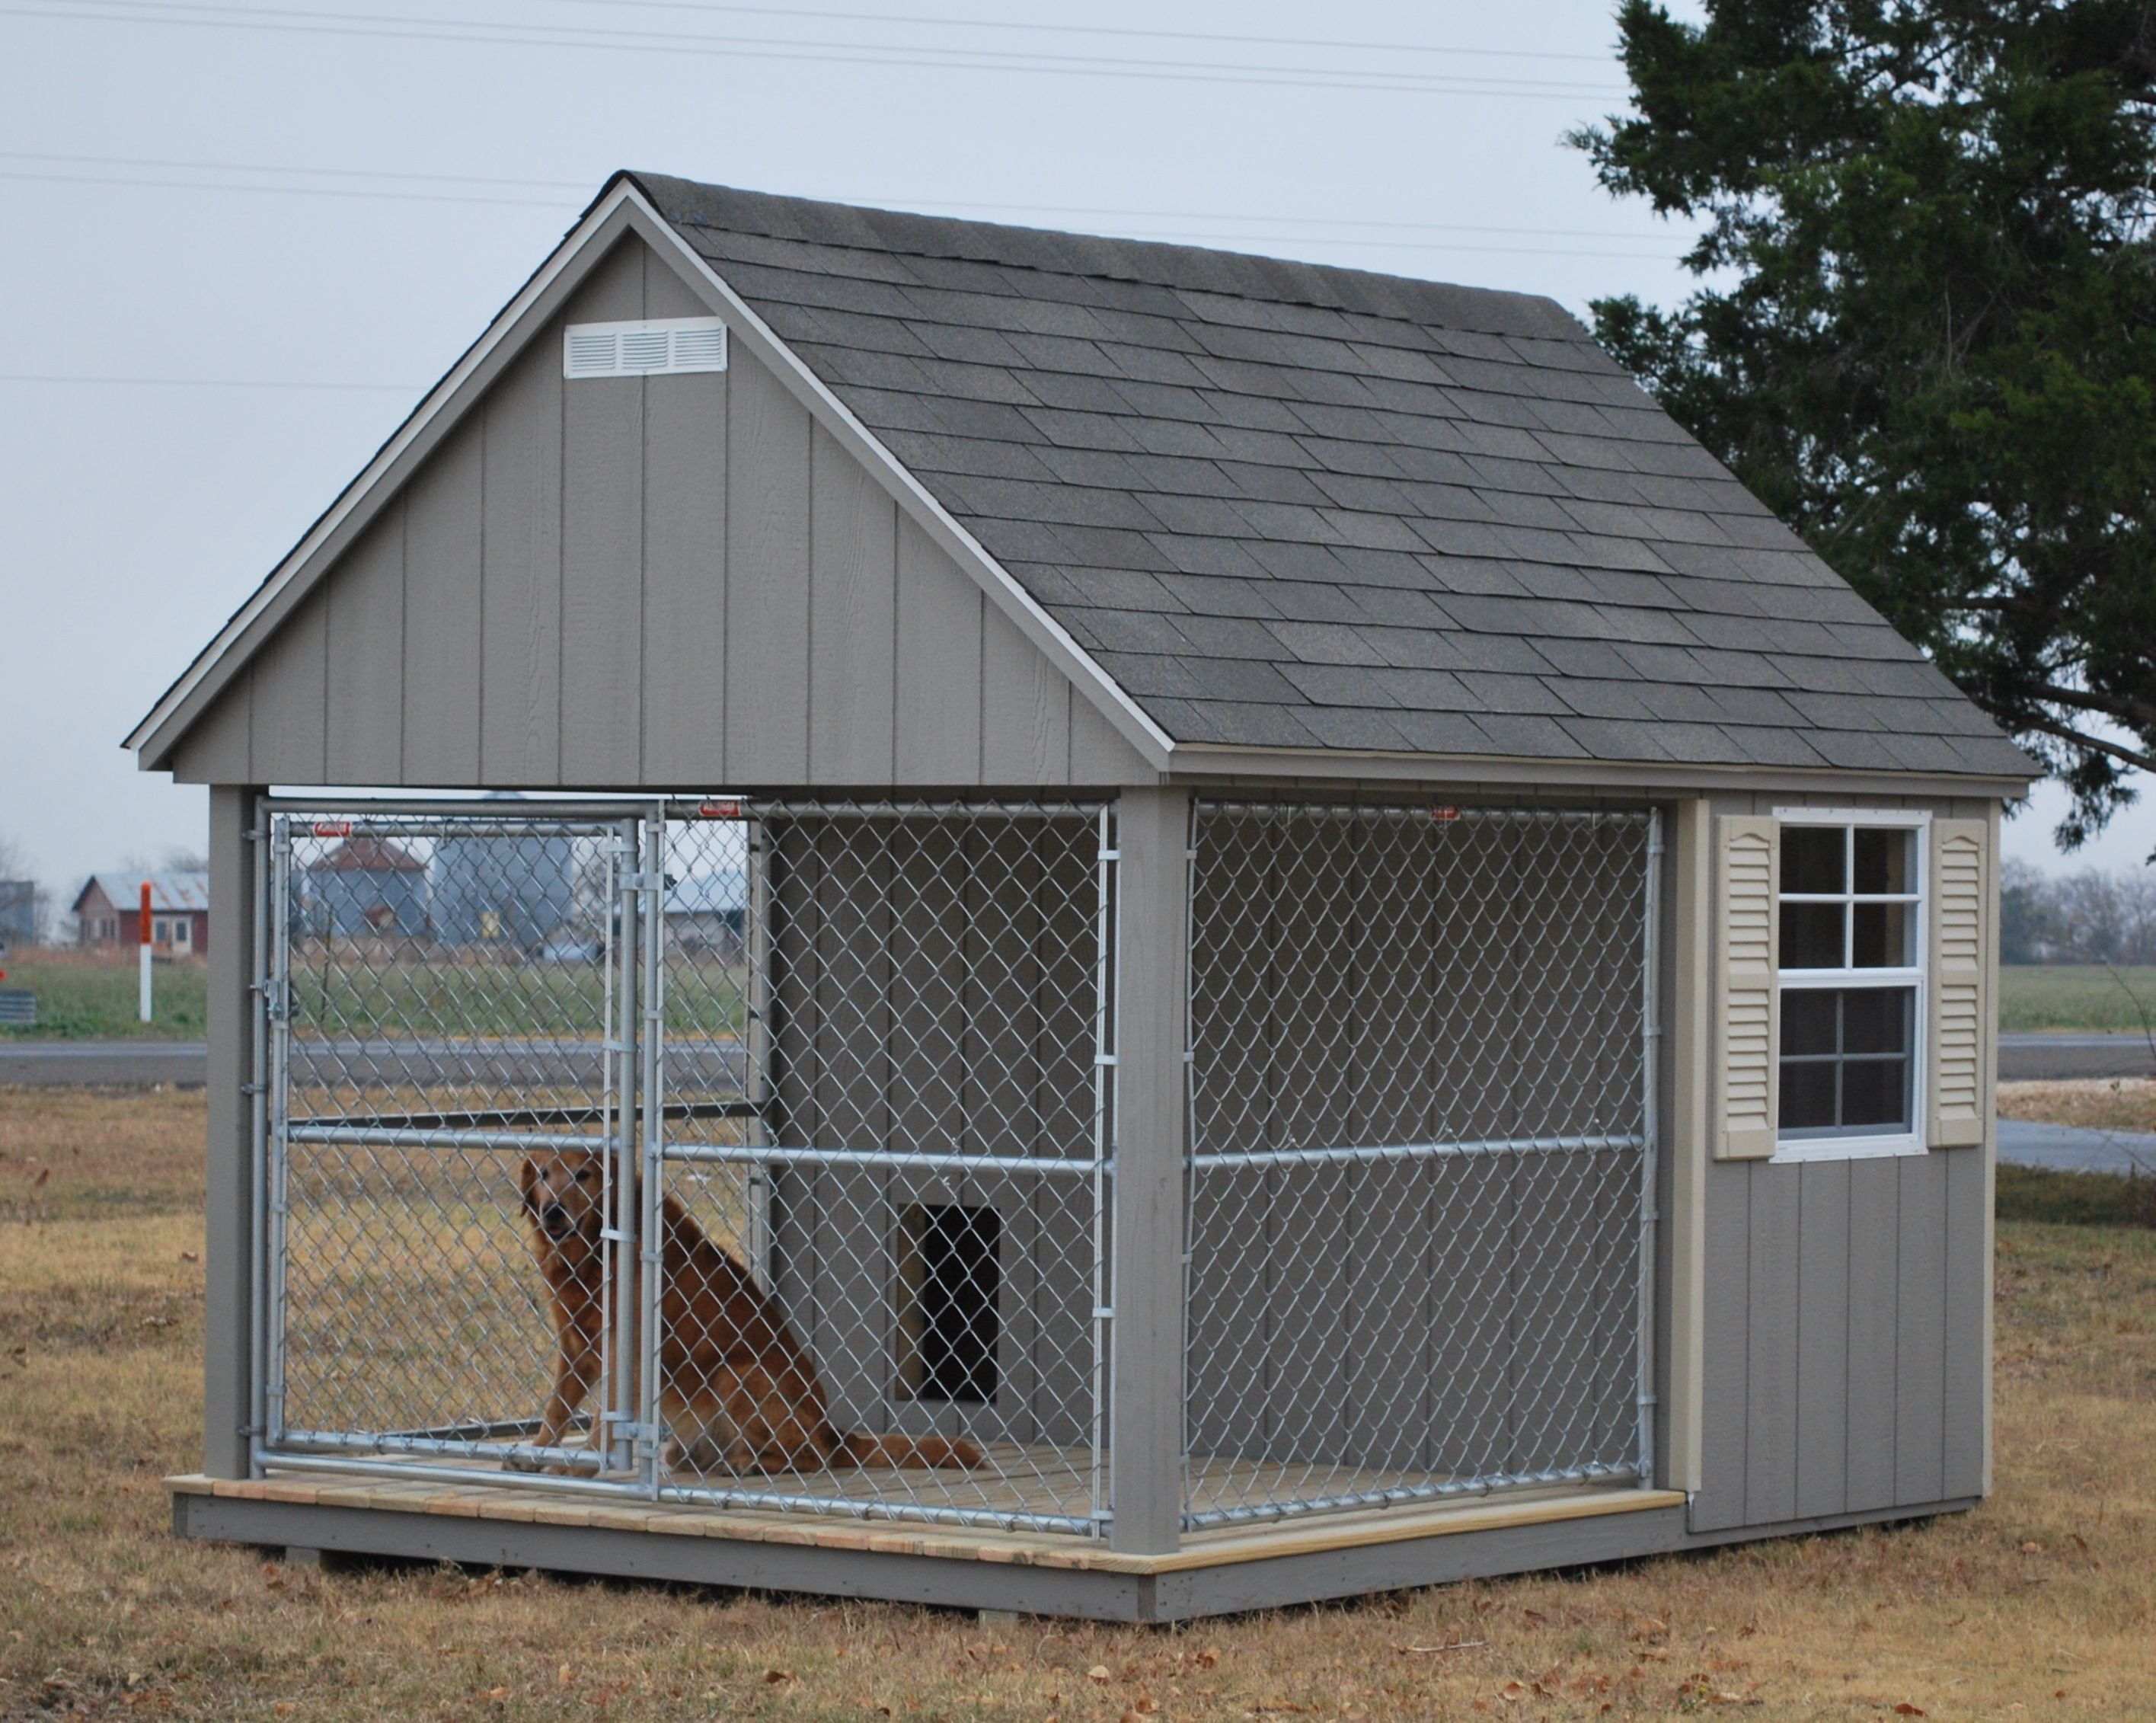 Affordable Dog Kennels For Sale In Texas 2020 Model Dog Kennels For Sale Outdoor Dog Dog Kennel